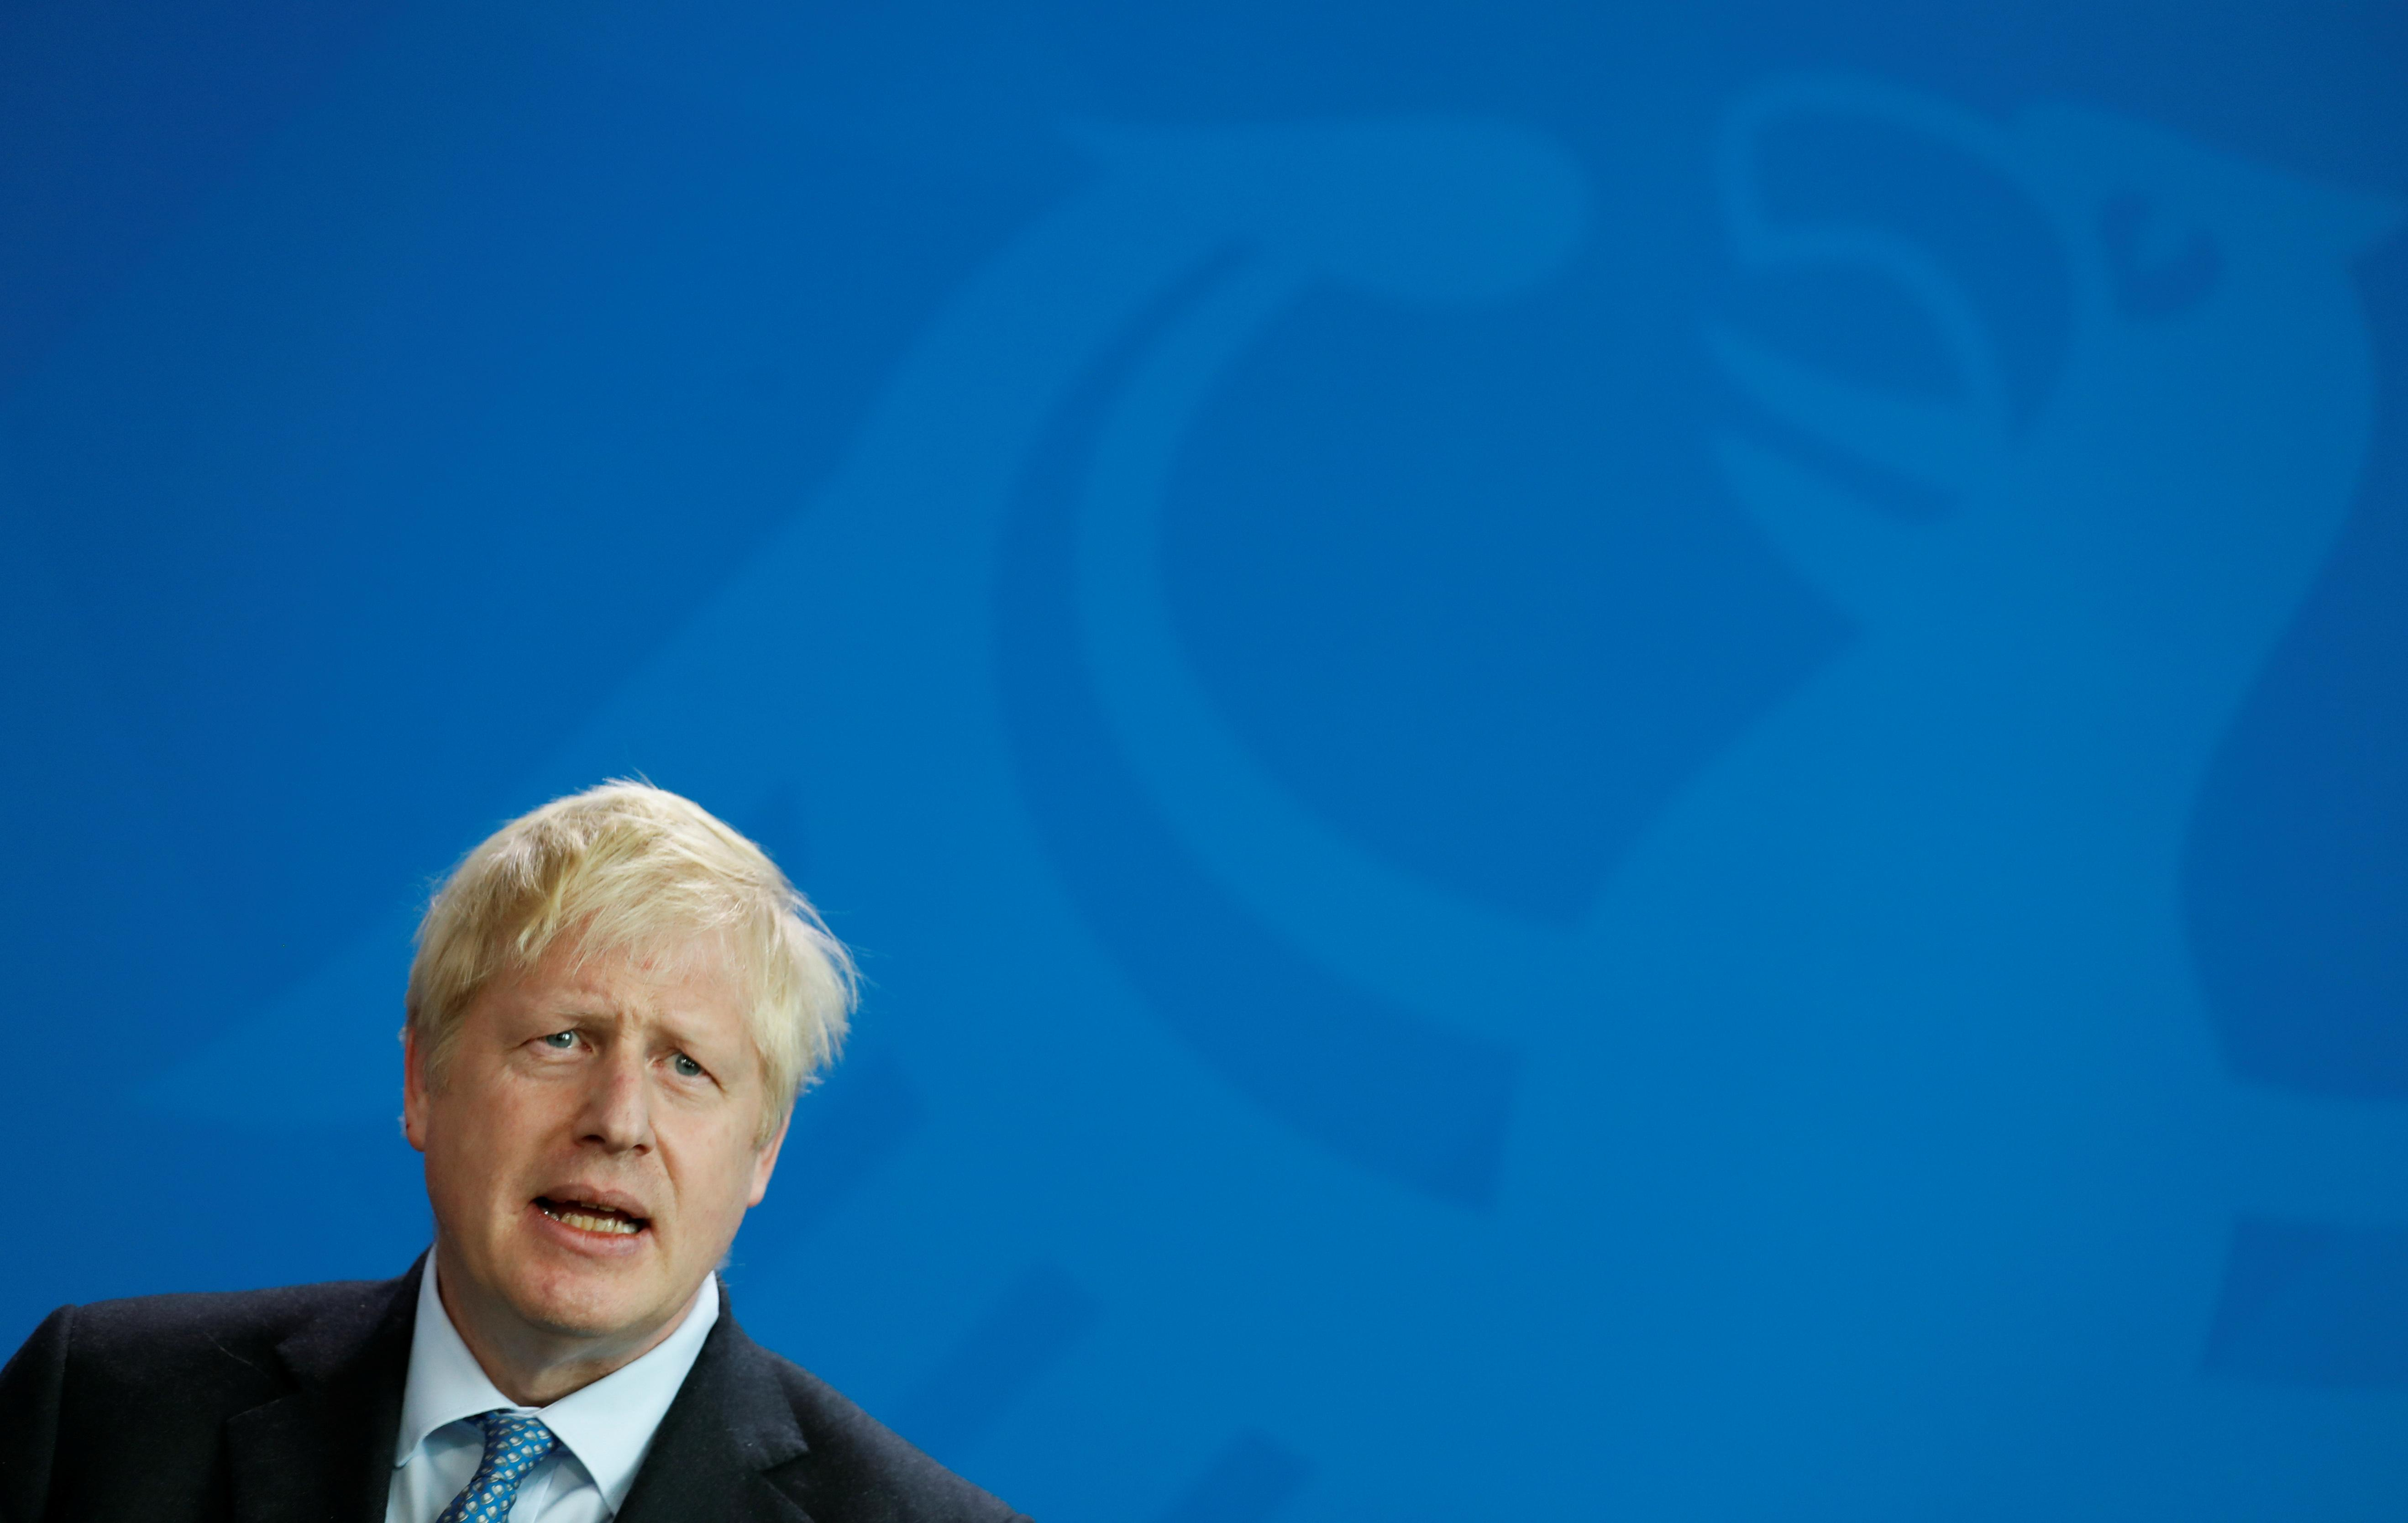 UK's Johnson says case yet to be made for Russia to rejoin G7